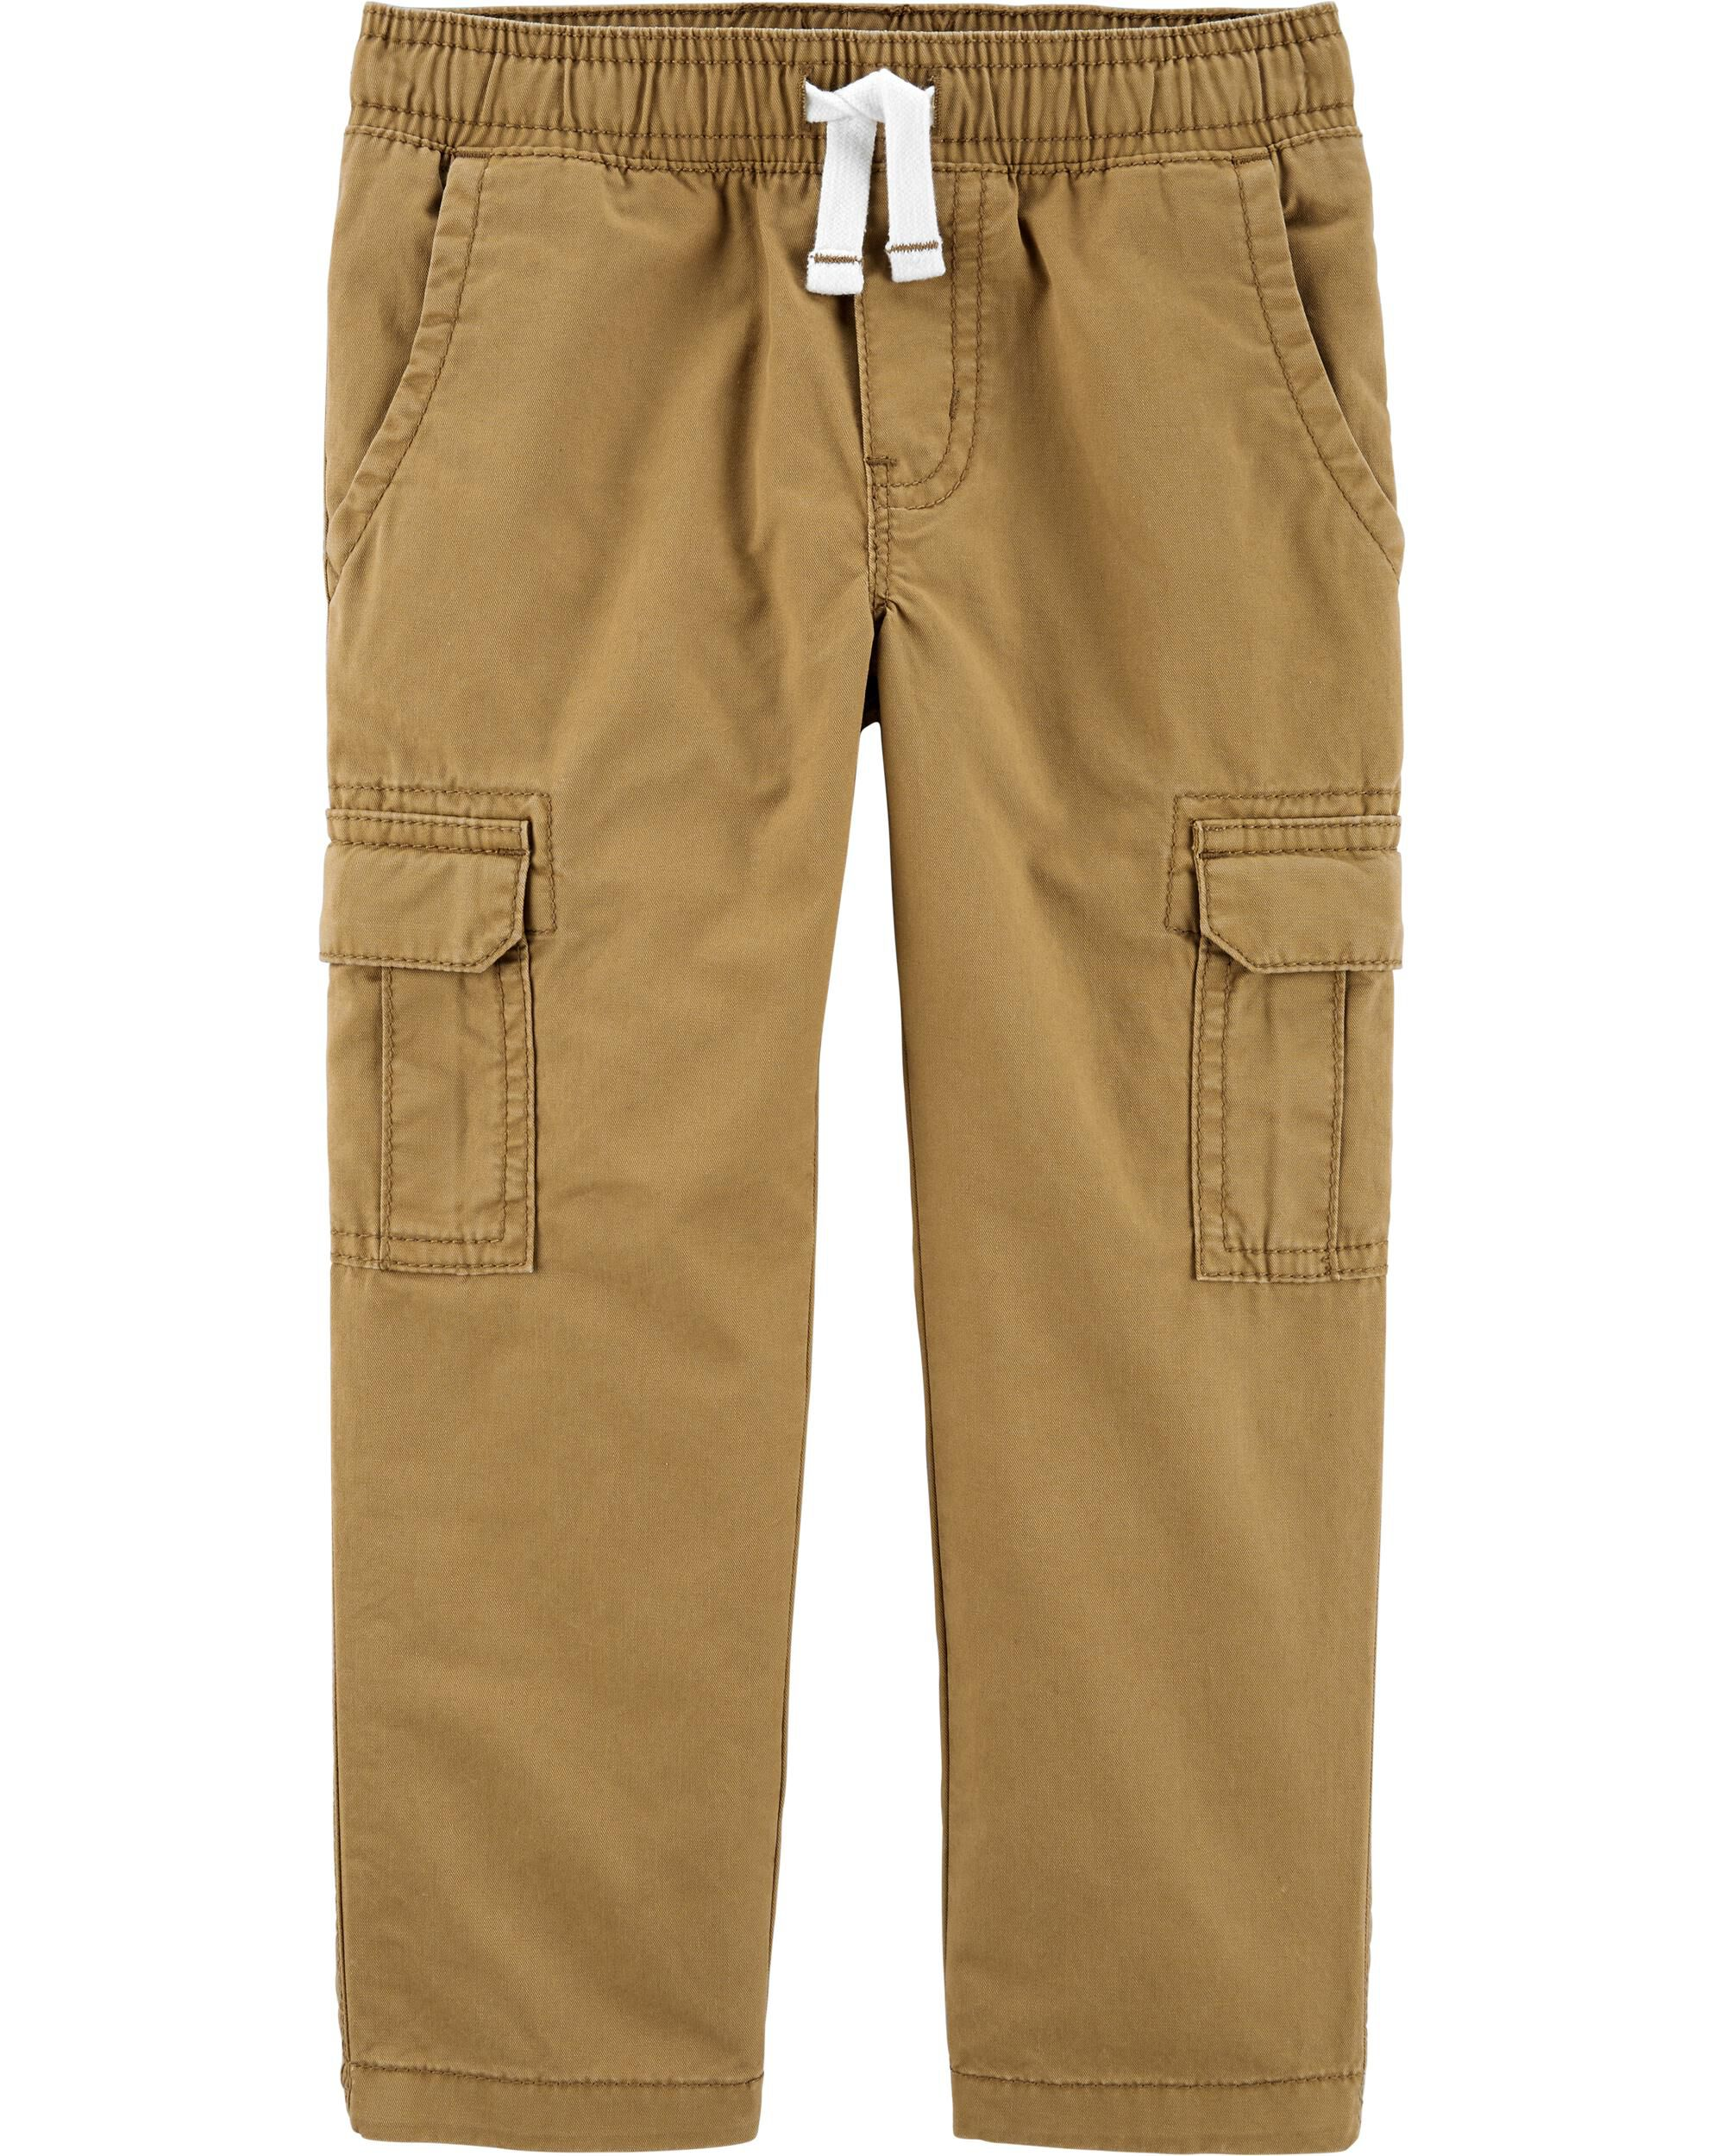 Easy Pull-On Cargo Pants